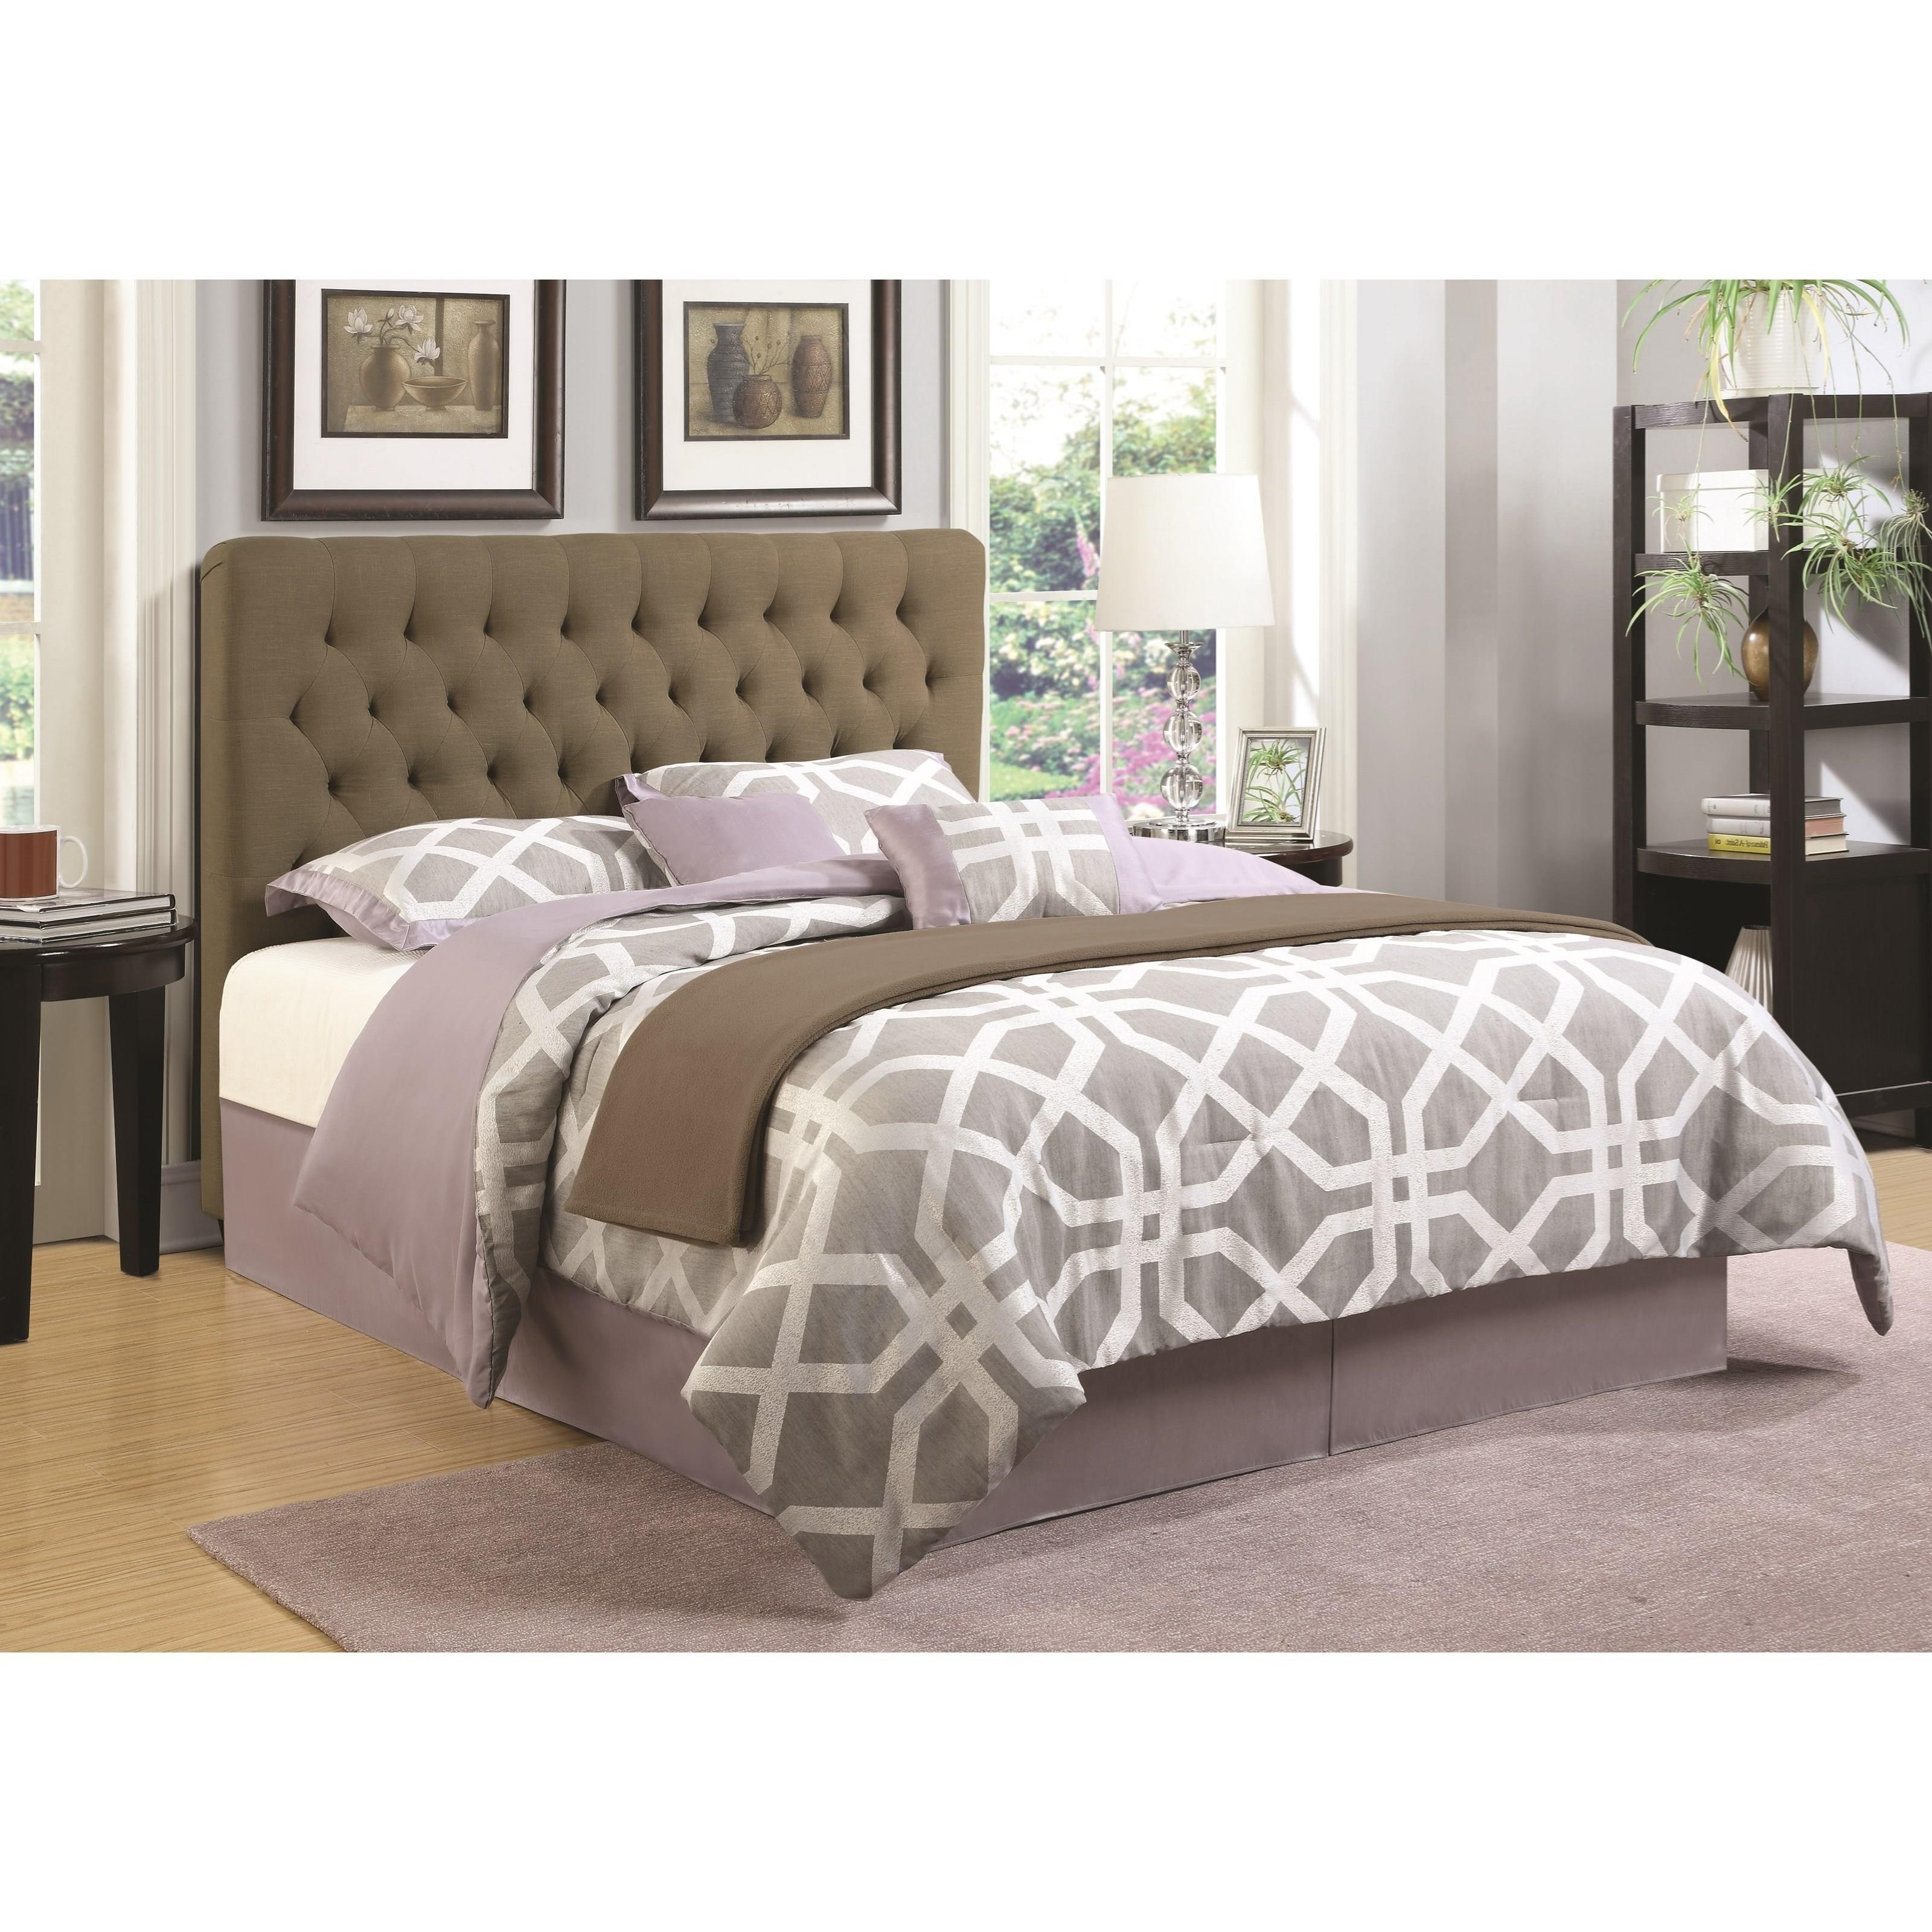 Coaster Upholstered Beds Twin Headboard - Item Number: 300528TB1